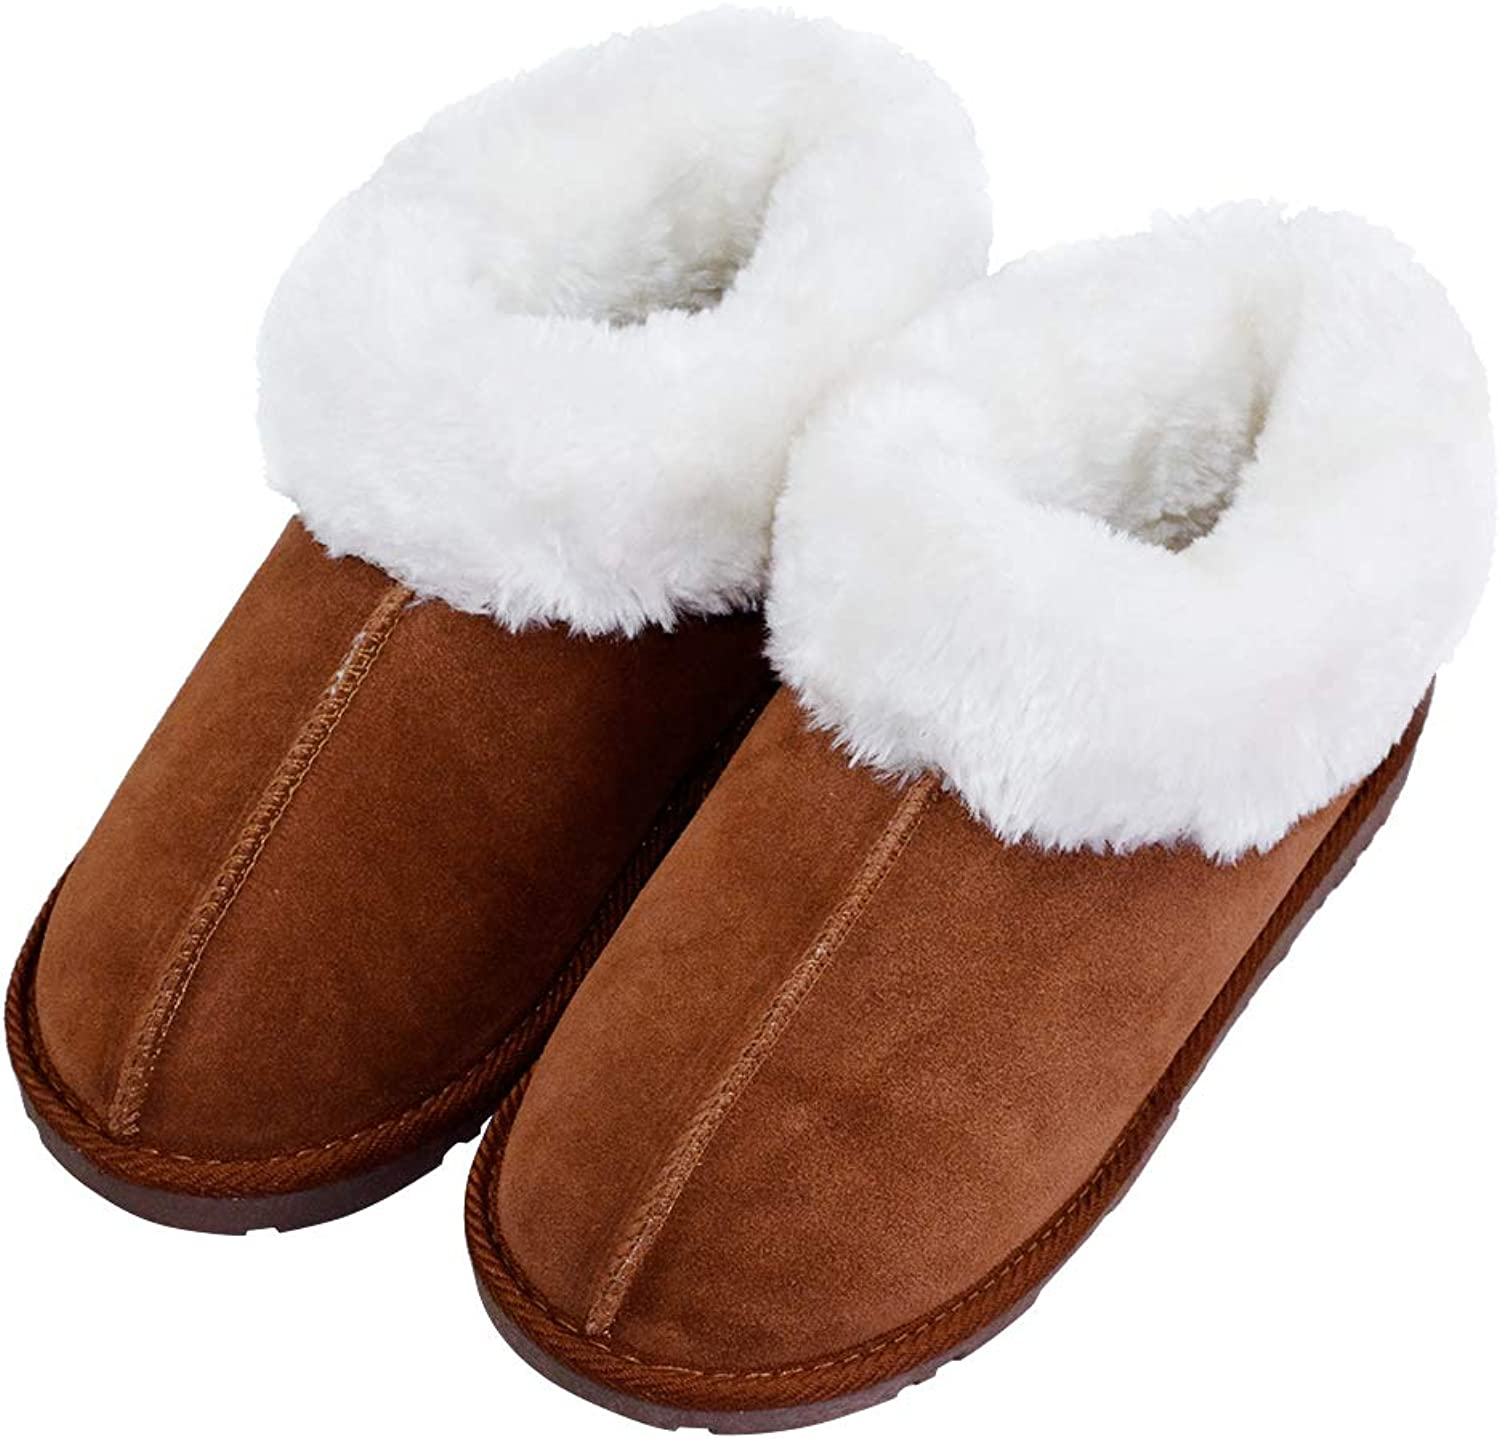 VLLY Women's Genuine Cowhide Warm Plush Lining Slip On Indoor House Slippers